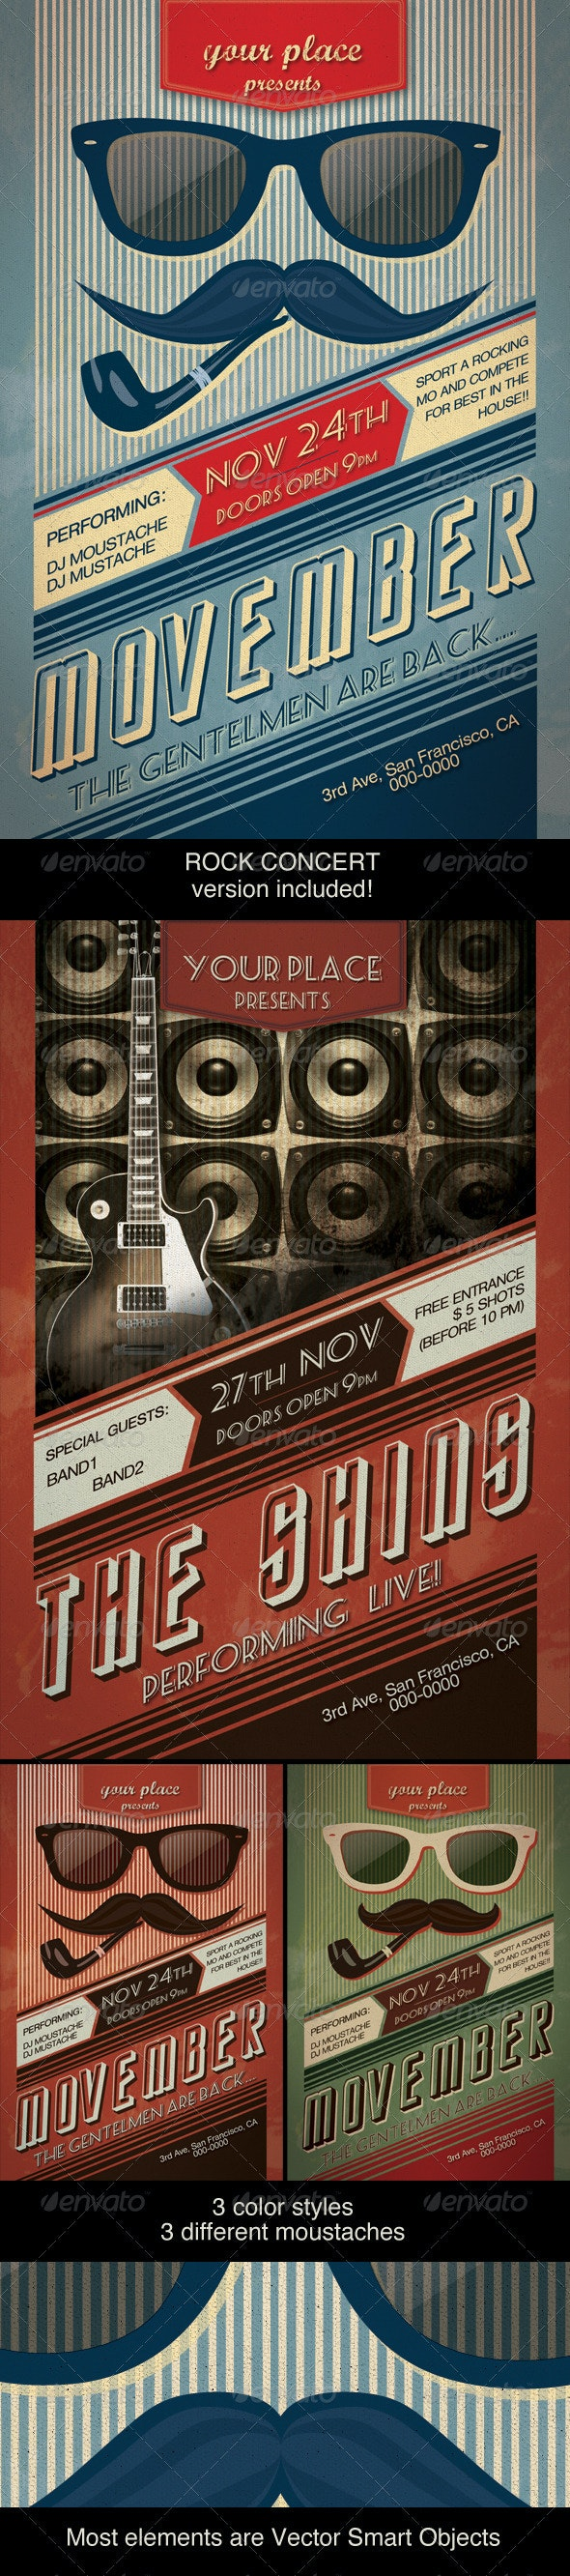 Movember Retro Party Flyer - Clubs & Parties Events